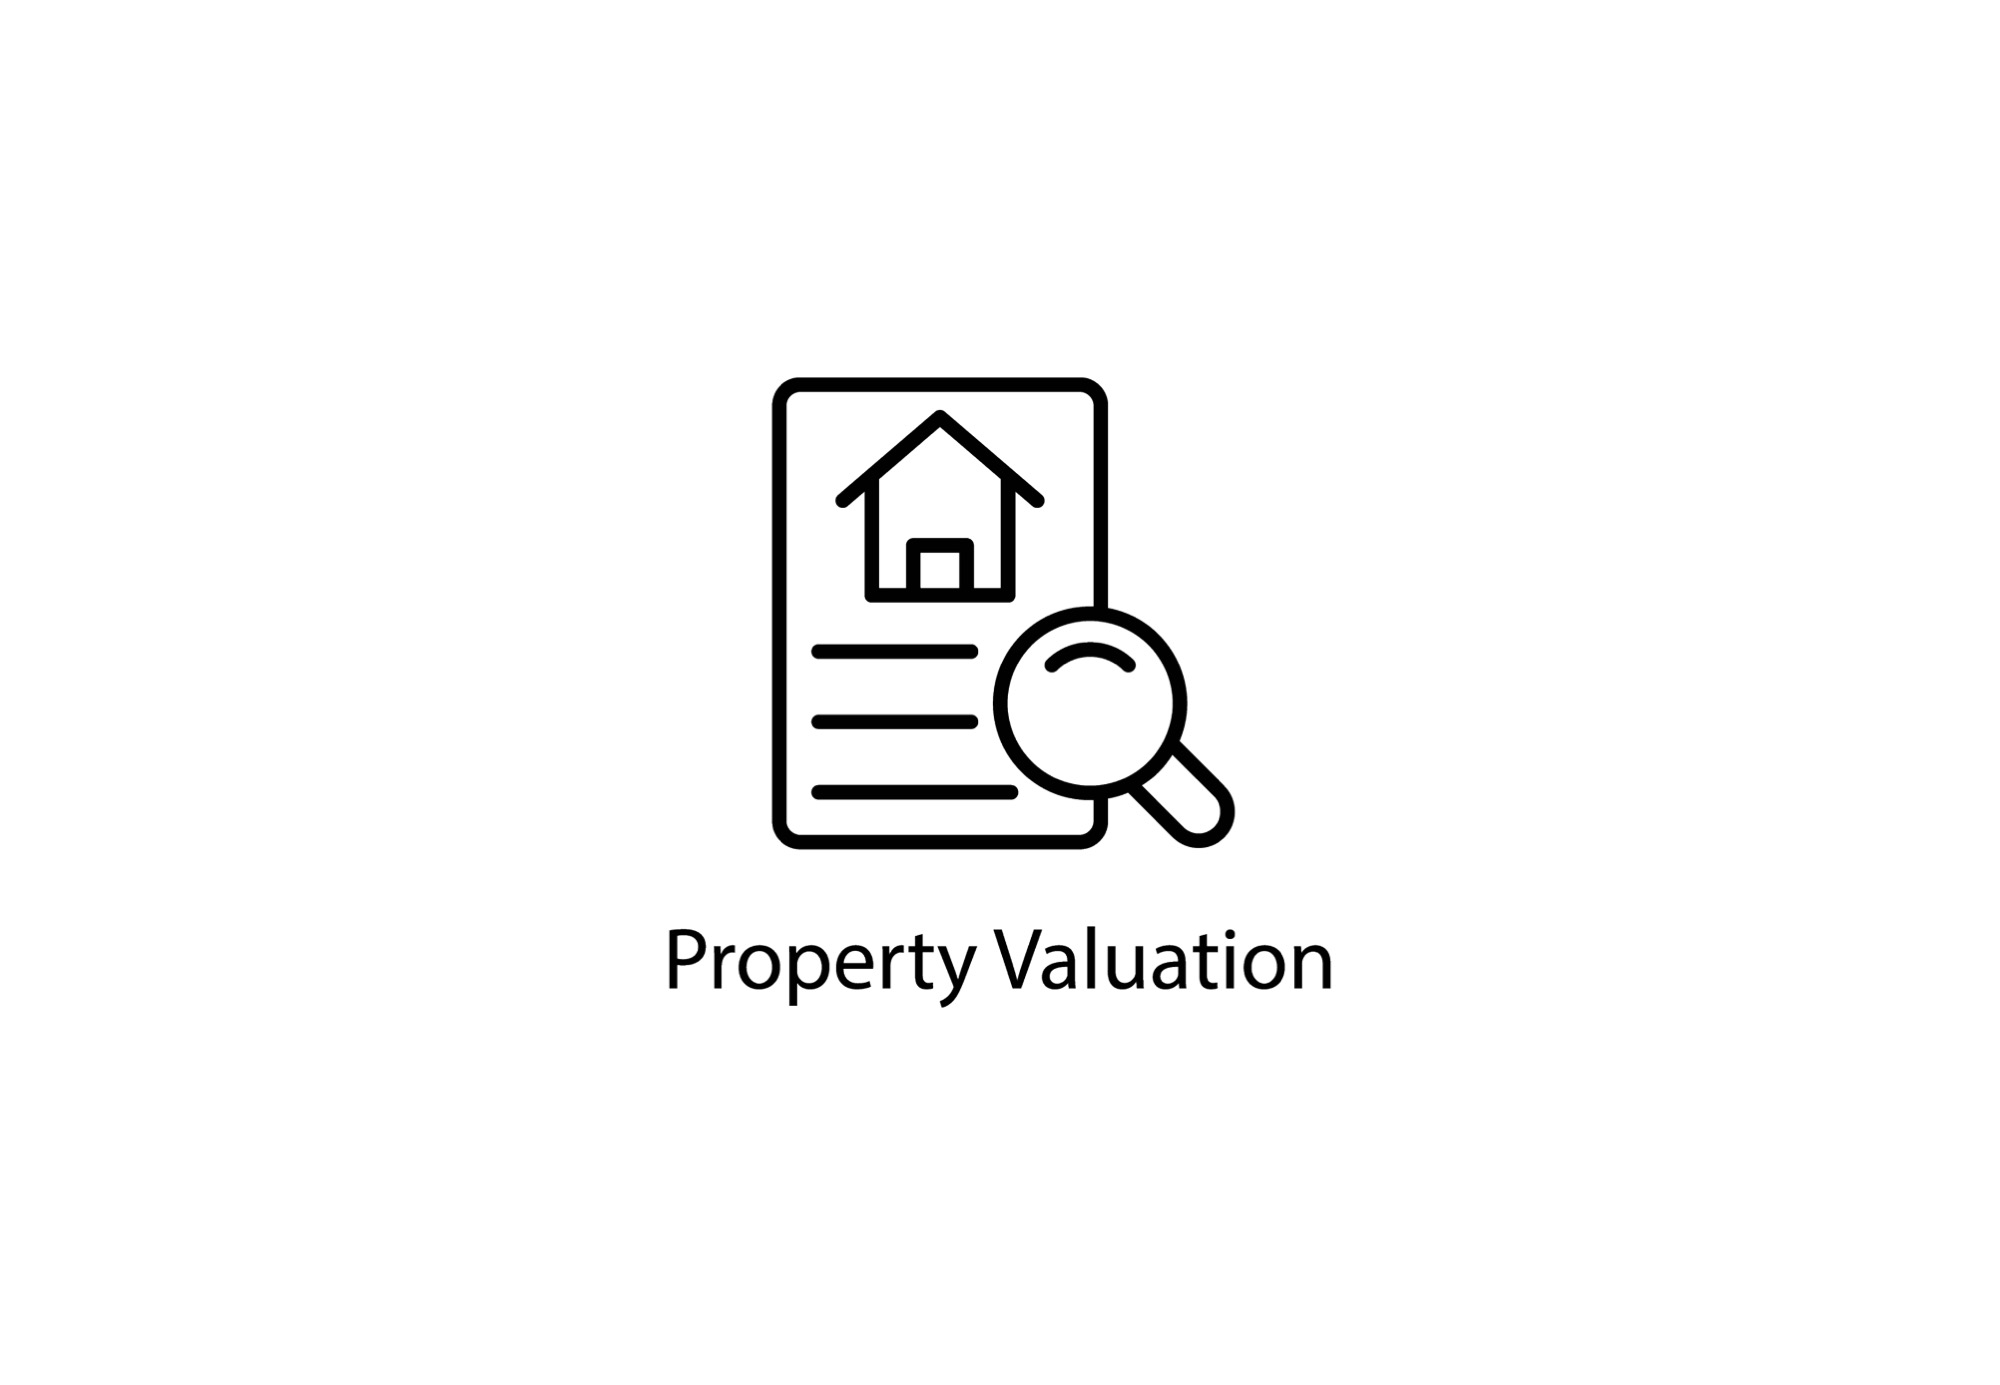 VALUATION ADVICE ON DIFFERENT PROPERTY TYPOLOGIES